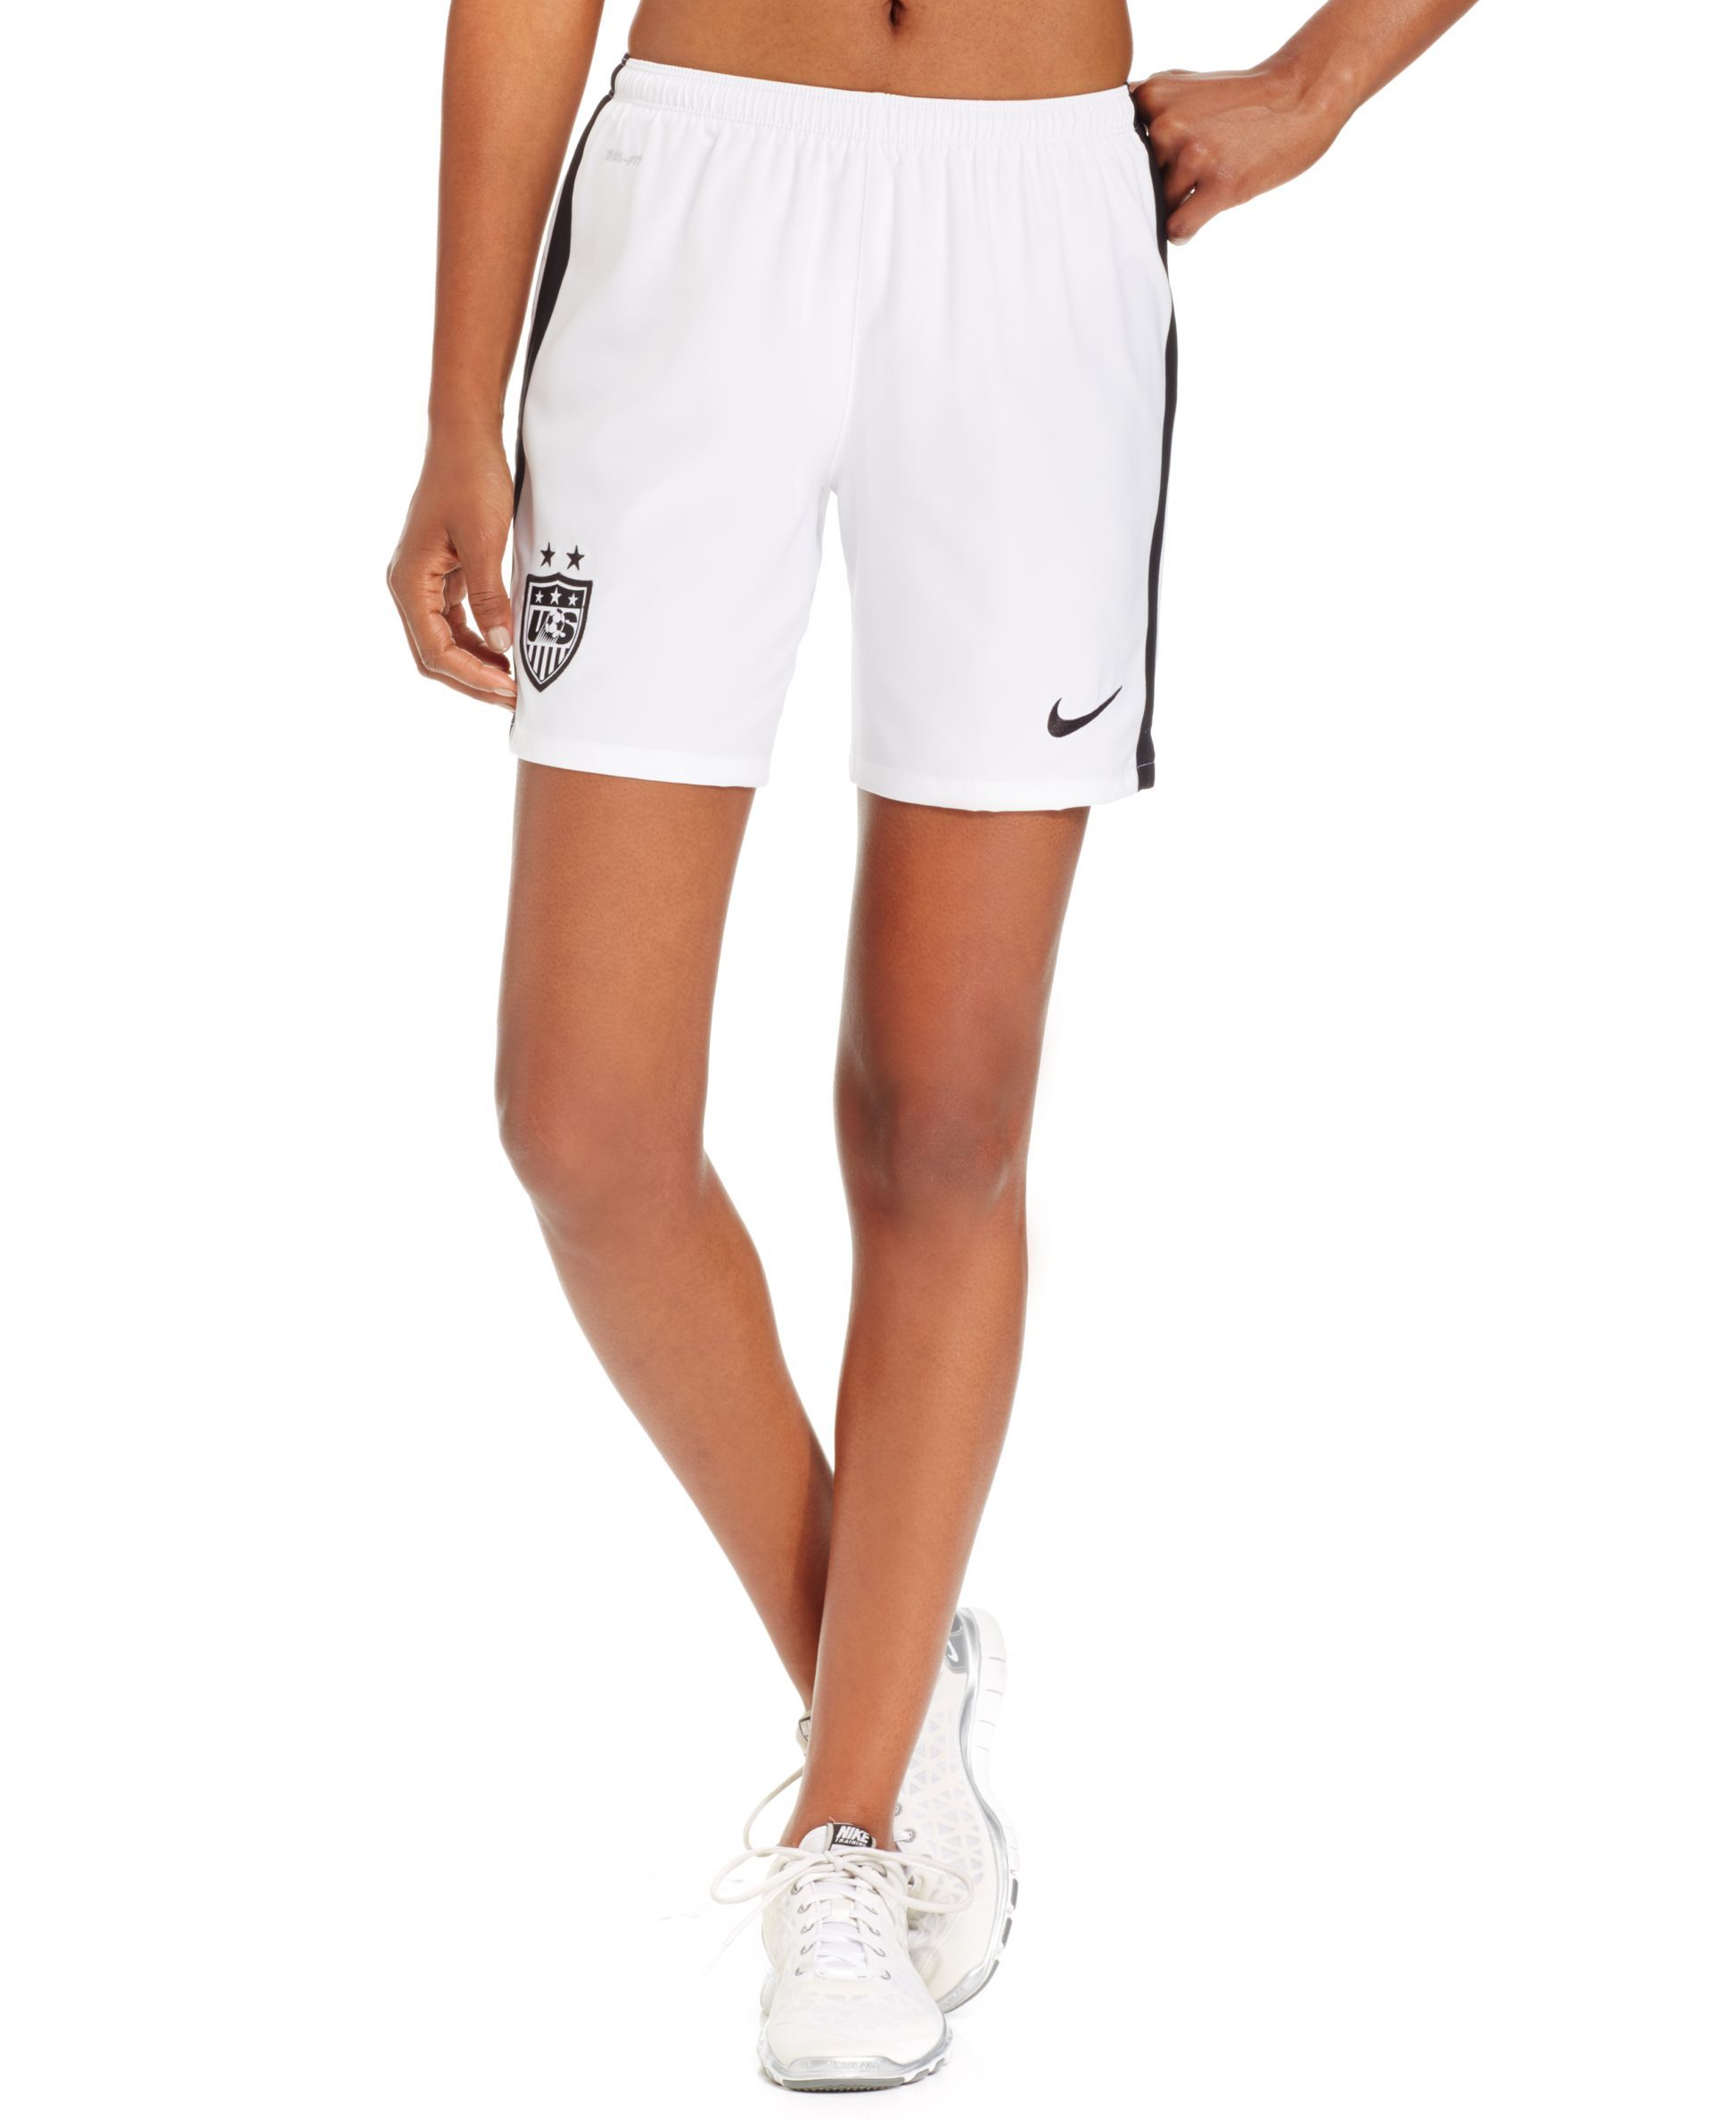 Nike Team Usa Stadium Soccer Shorts | Soccer | Soccer ...